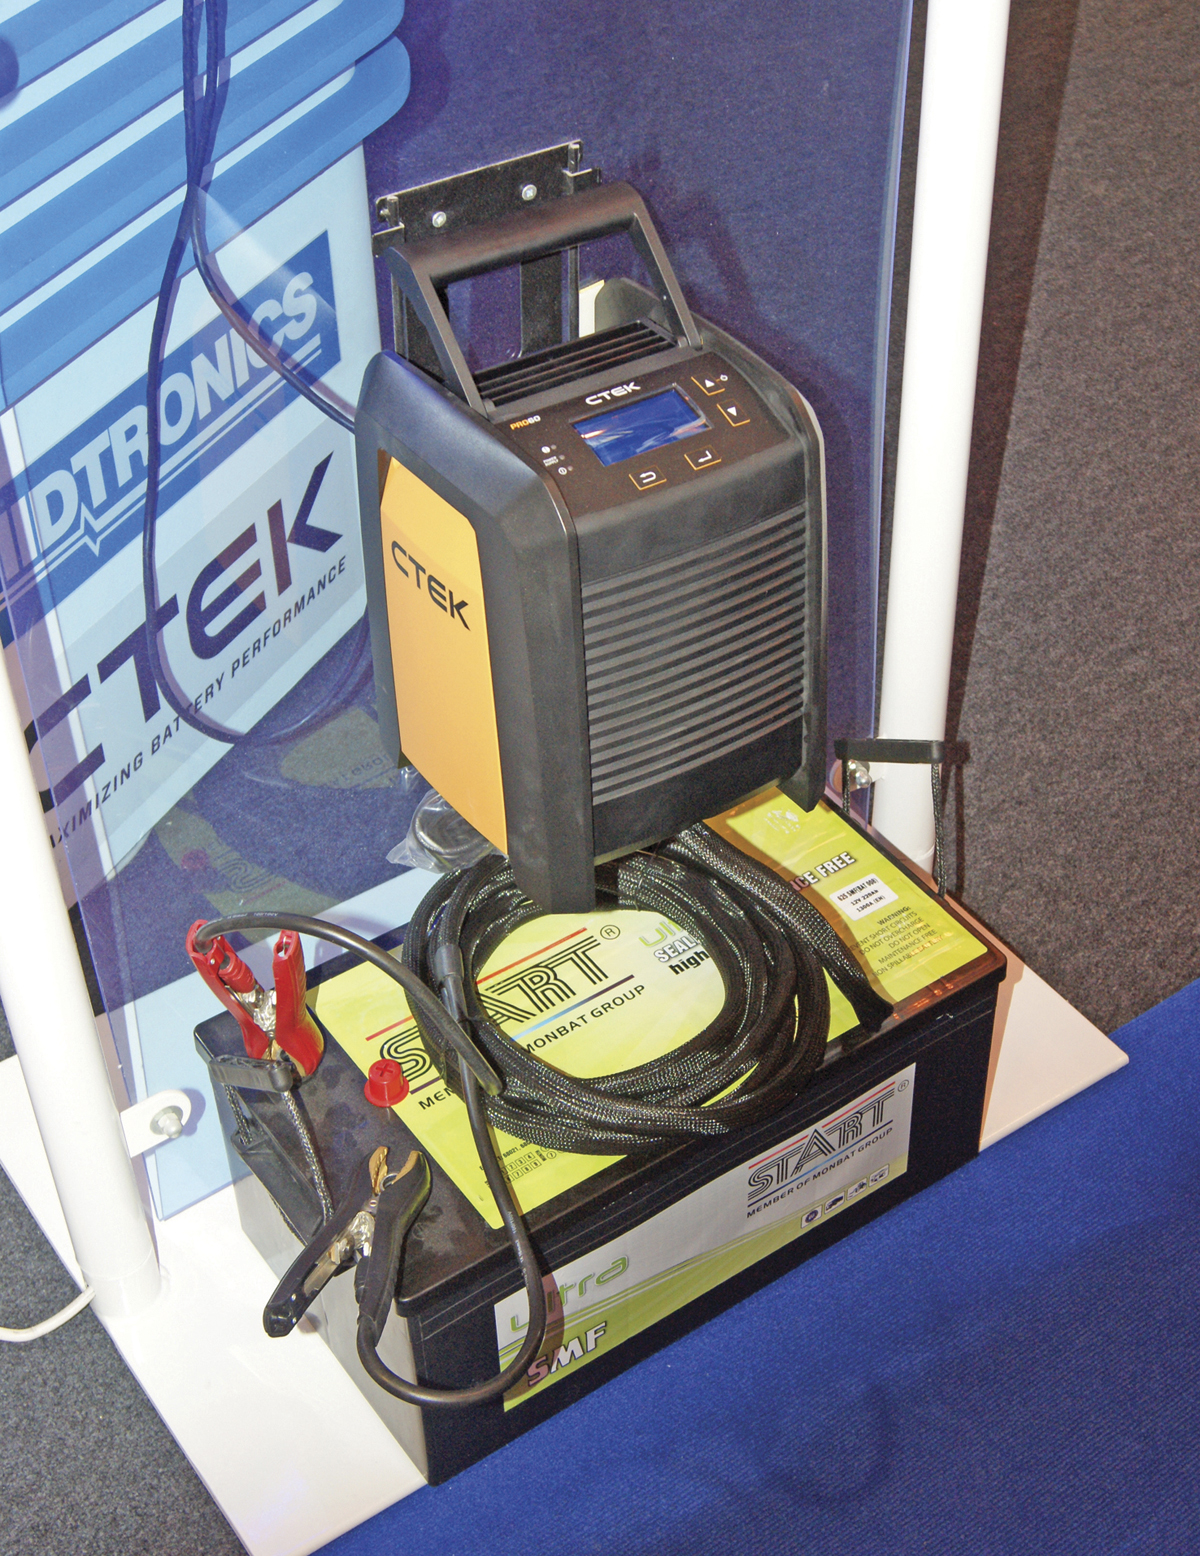 The CTEKpro60 battery charger came with a free Midtronics Tester as a special offer by Rotronics during the show.